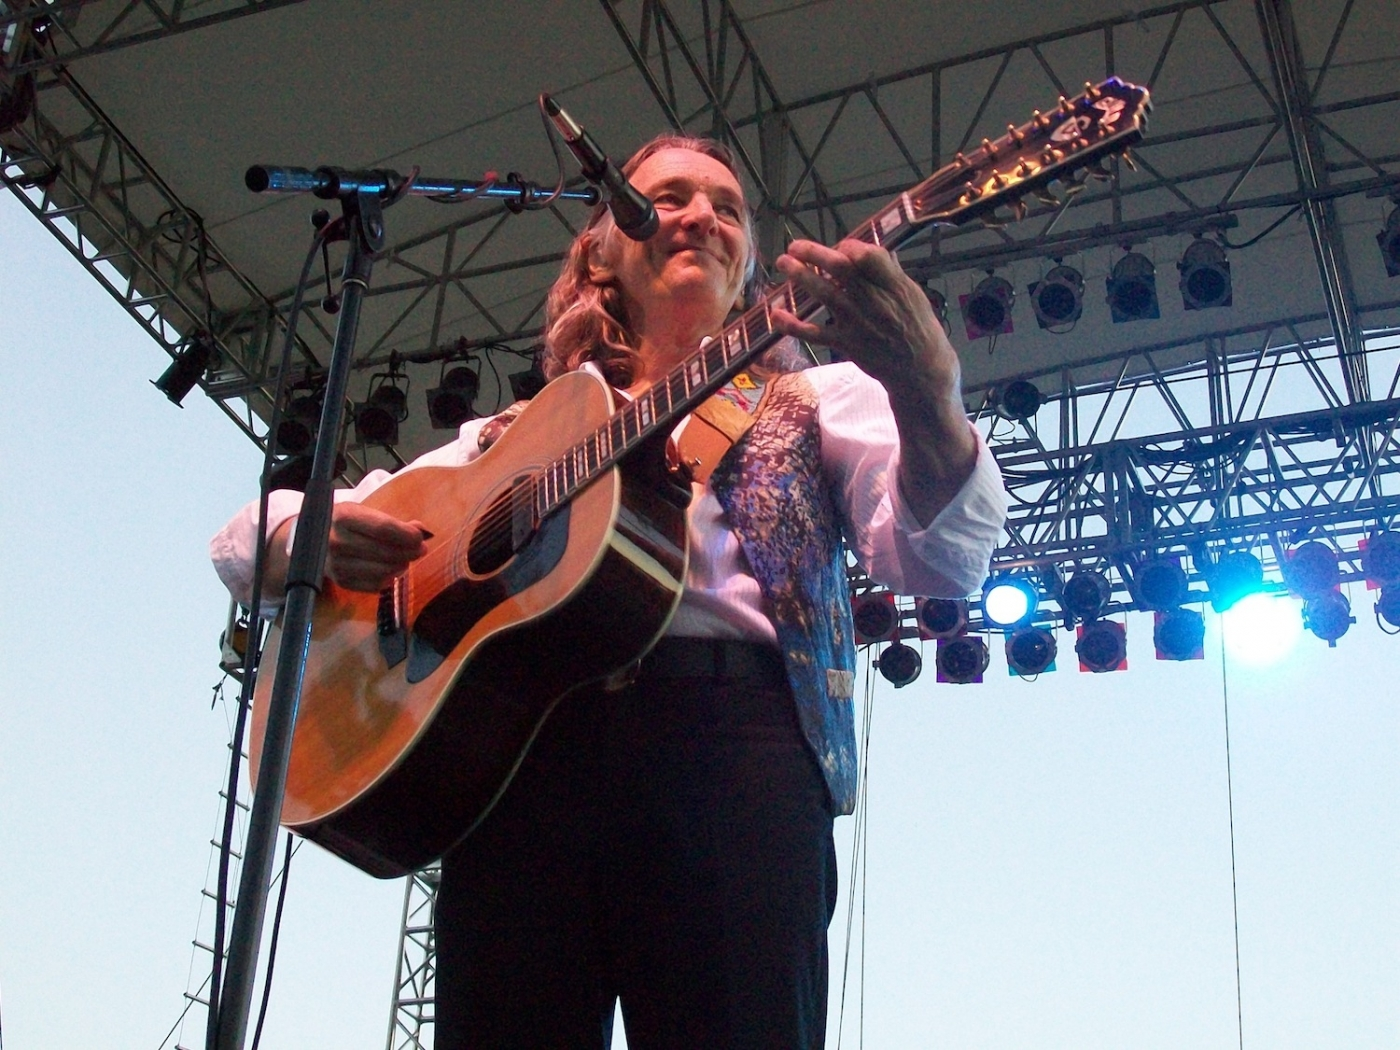 Pictured is Roger Hodgson performing at Artpark in 2012.